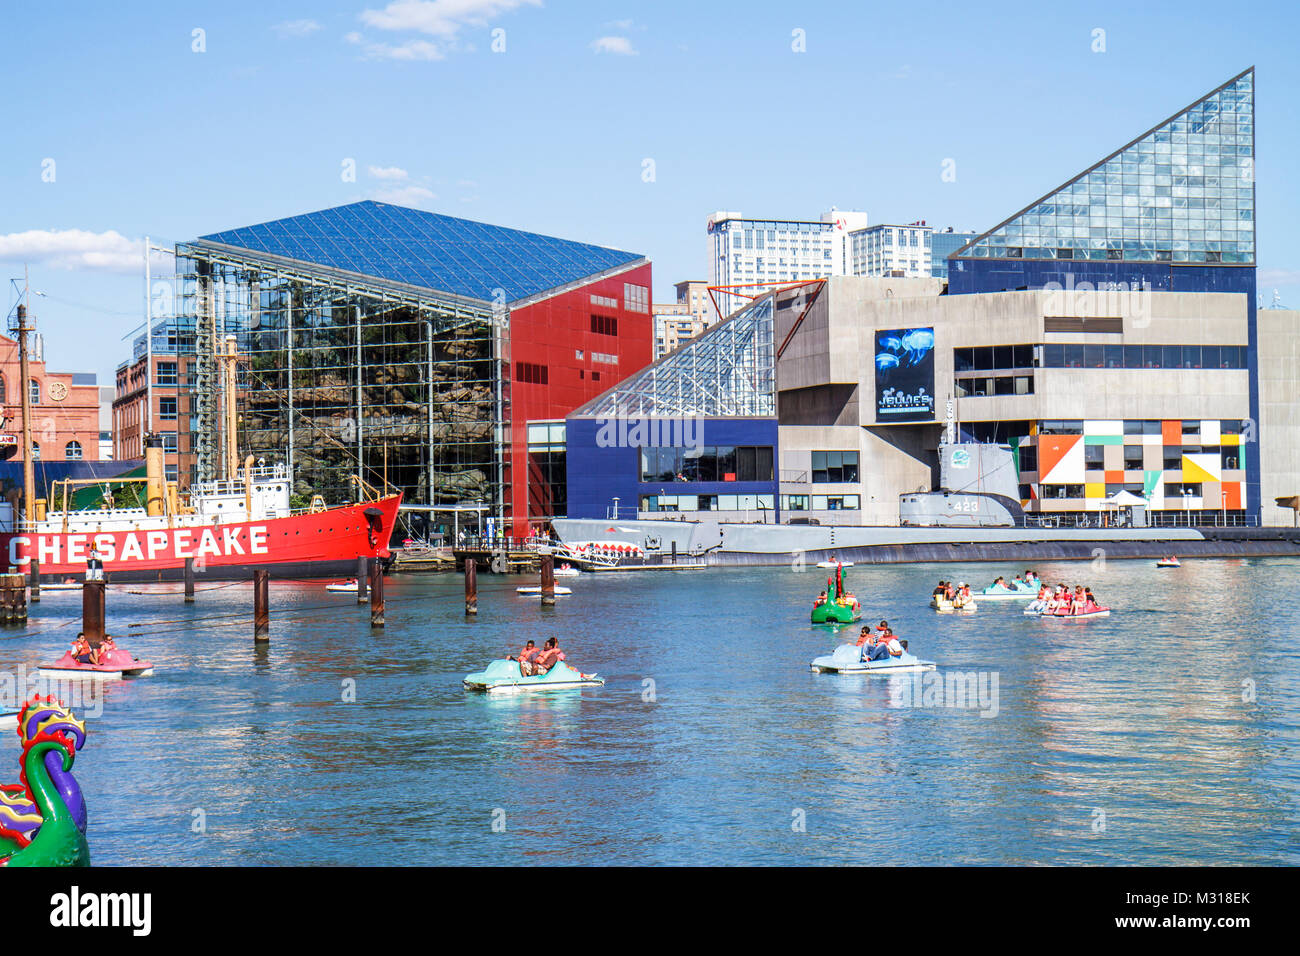 Baltimore Maryland Inner Harbor Patapsco River port waterfront Harborplace attraction National Aquarium Chesapeake - Stock Image